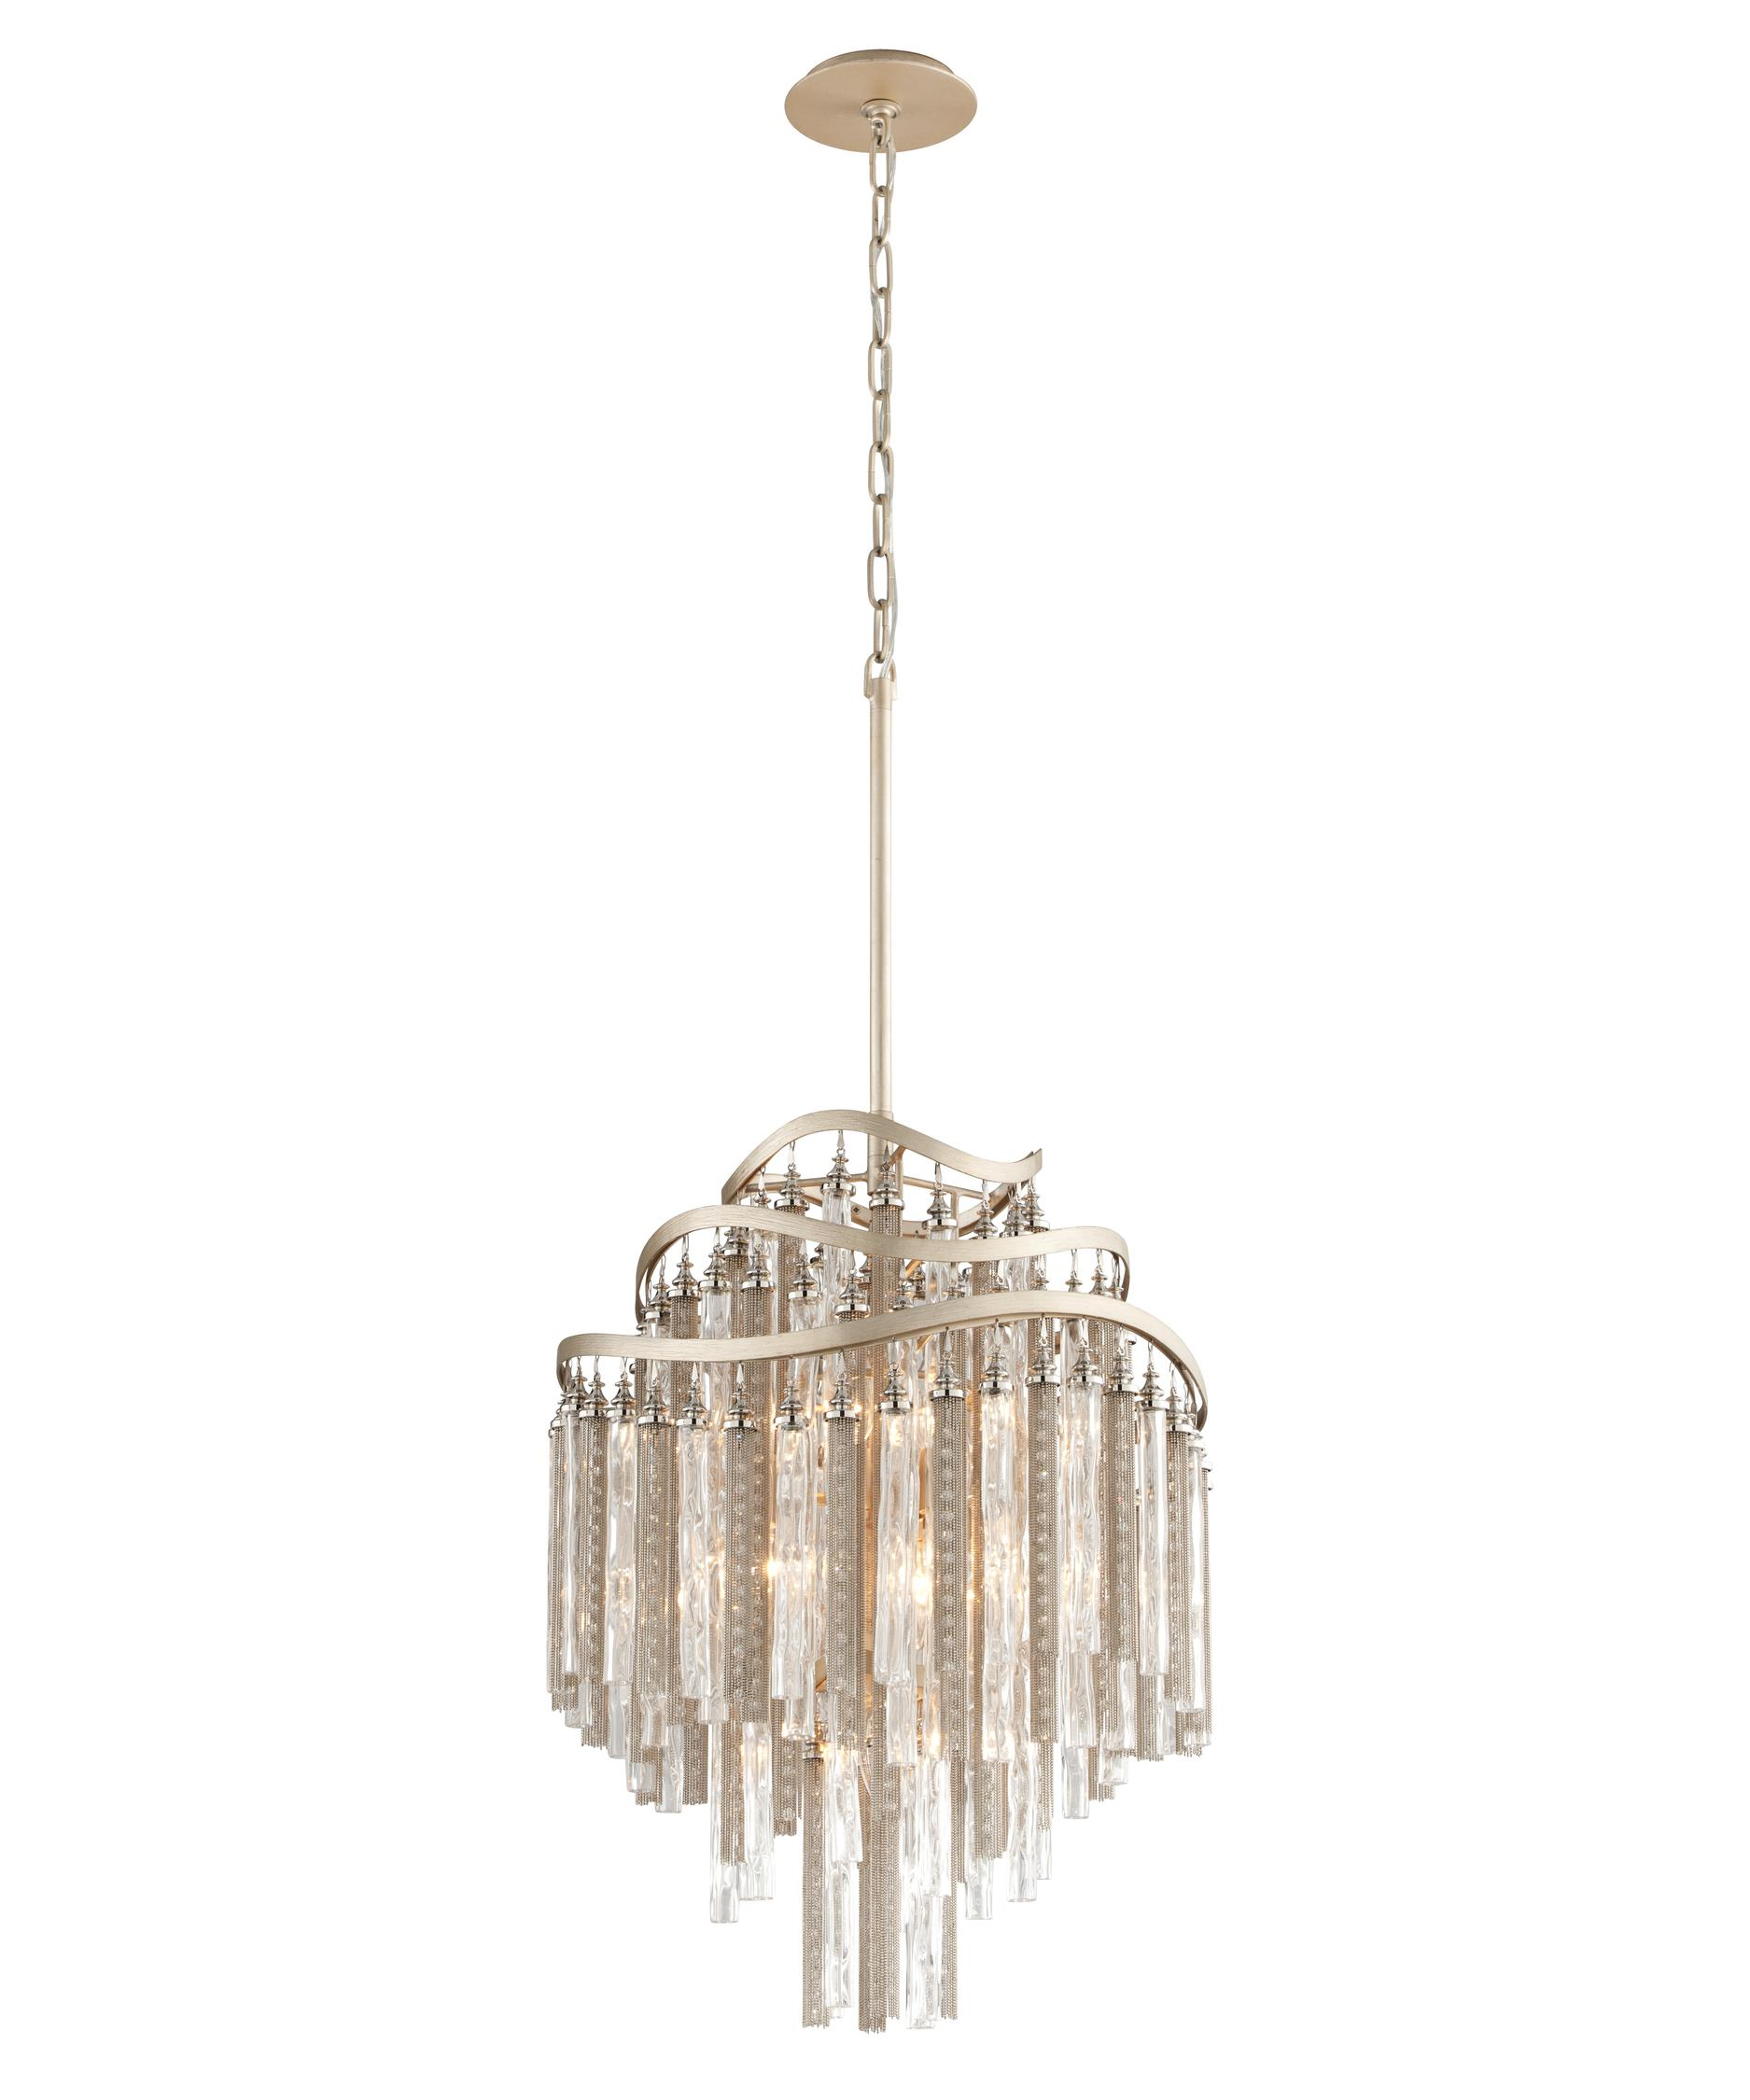 Corbett Lighting 176 47 Chimera 19 Inch Large Pendant